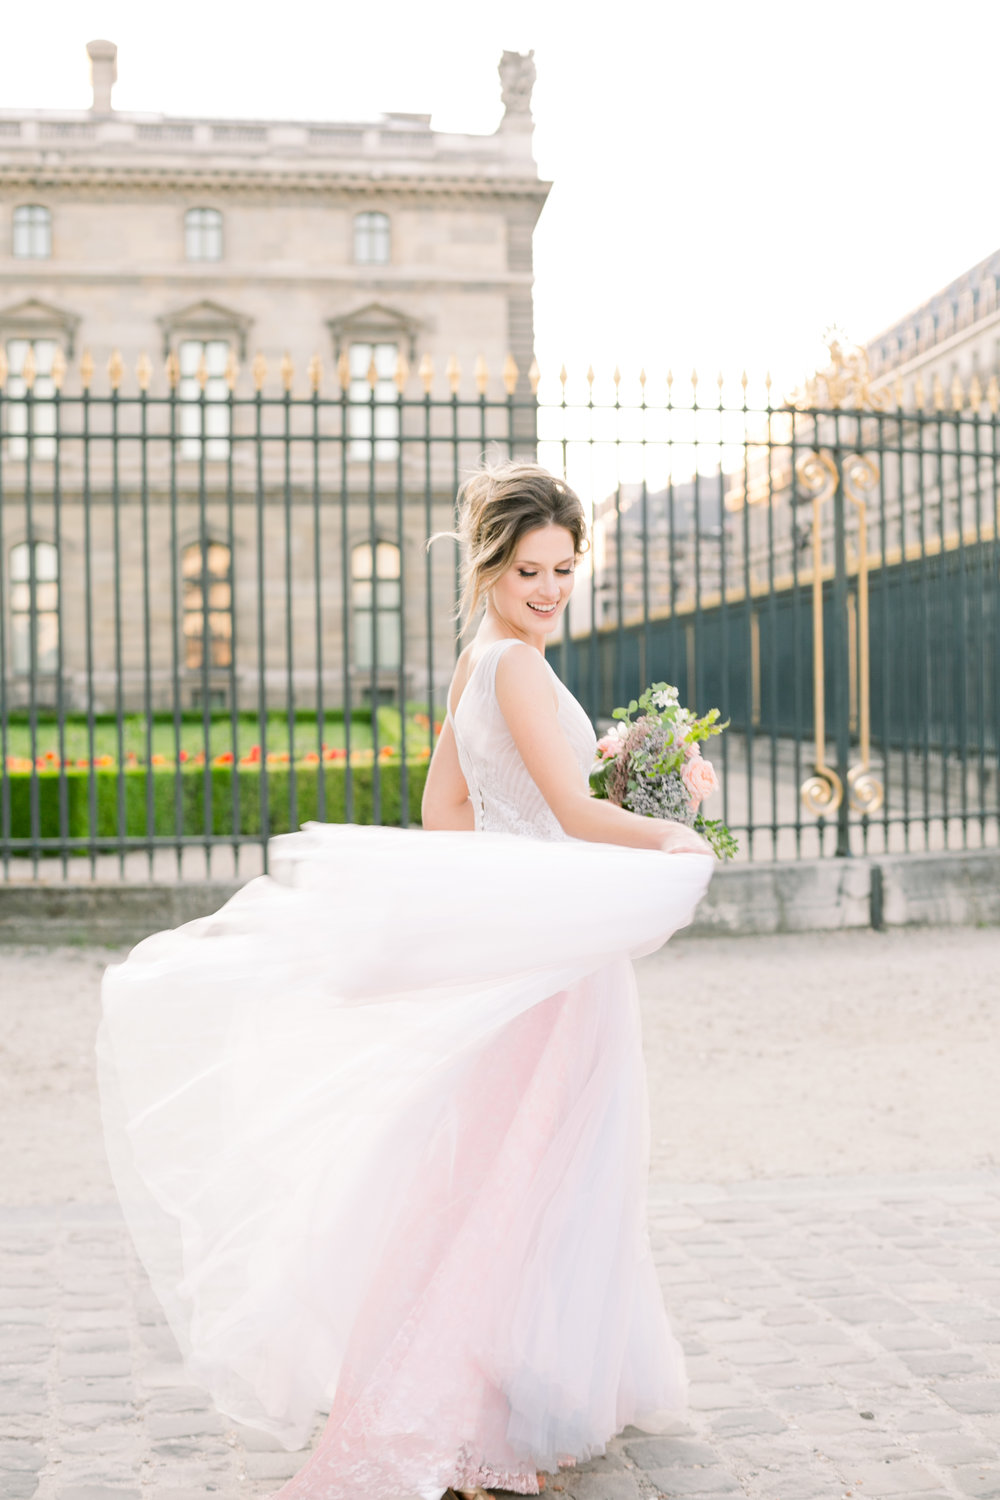 PARIS BRIDAL PORTRAIT BY THE LOUVRE IN PARIS FRANCE BY ABBIE MAE PHOTOGRAPHY